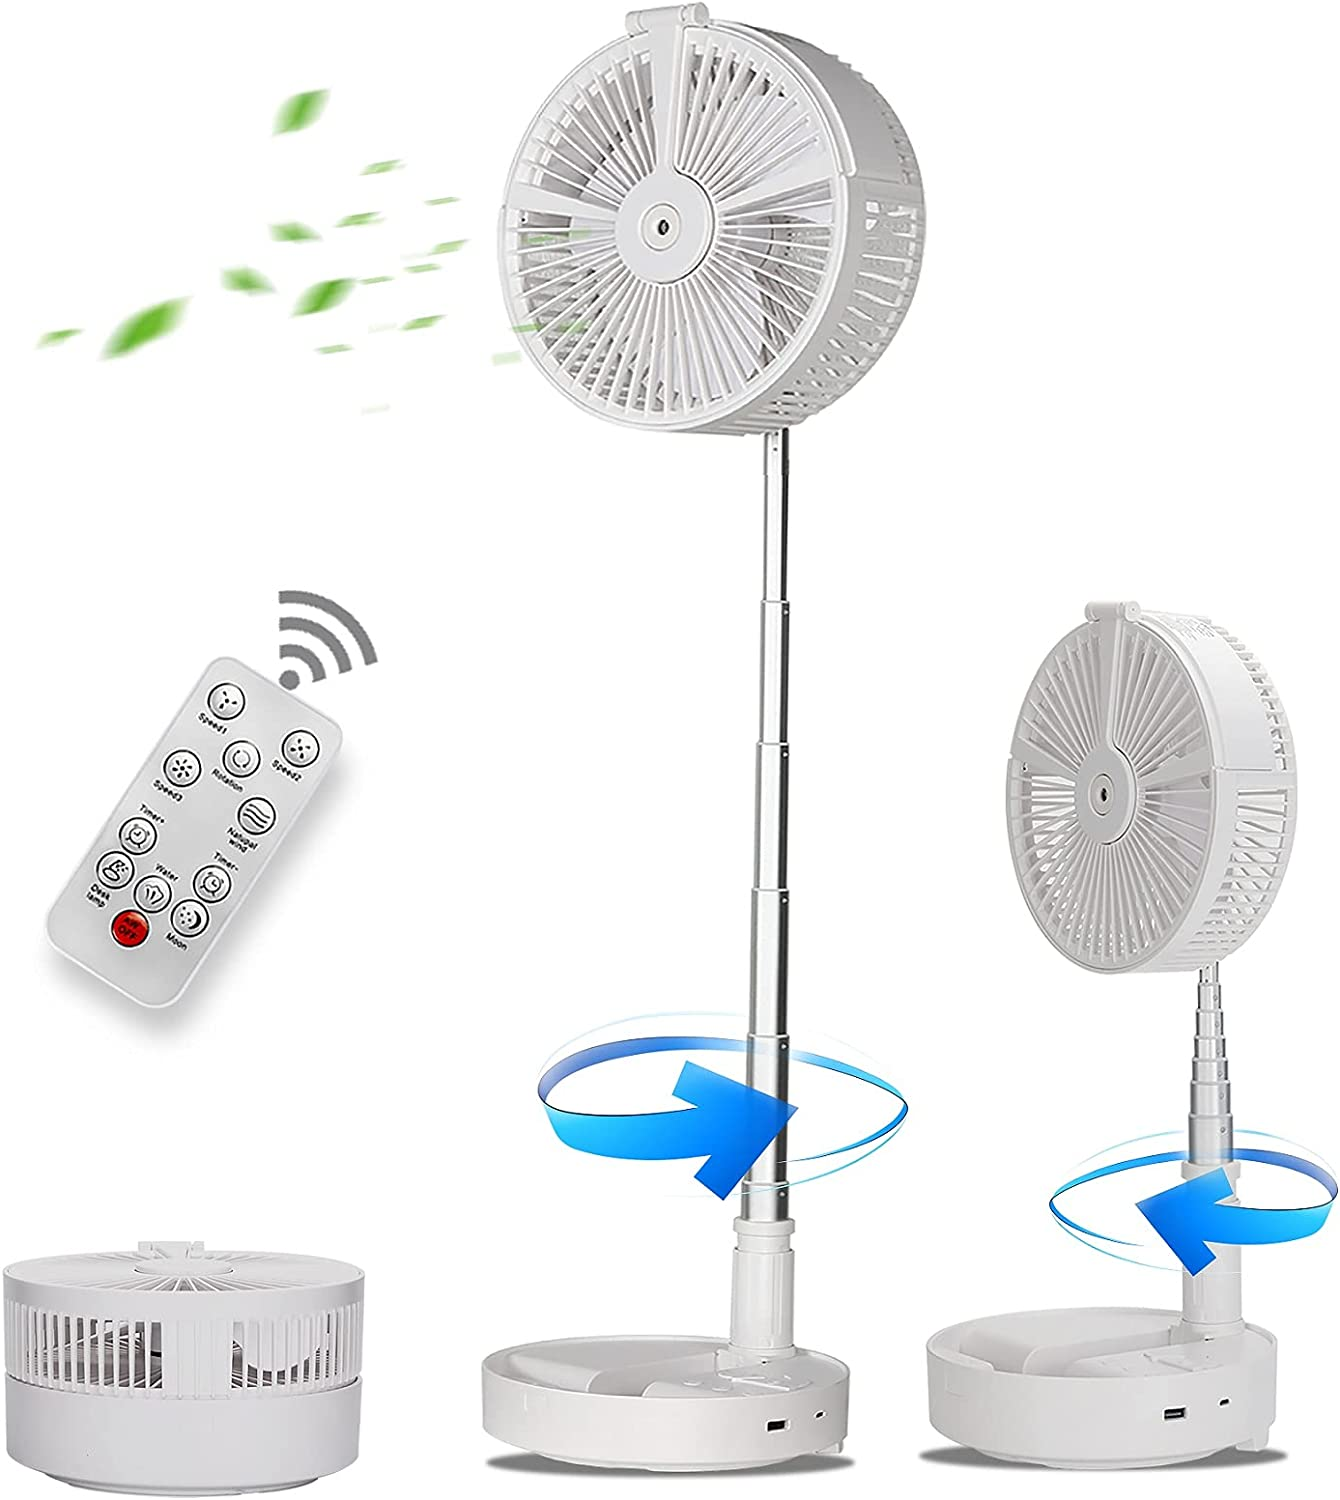 Howkes Fan for Bedroom Rotating with price Manufacturer direct delivery Char Remote Control;USB